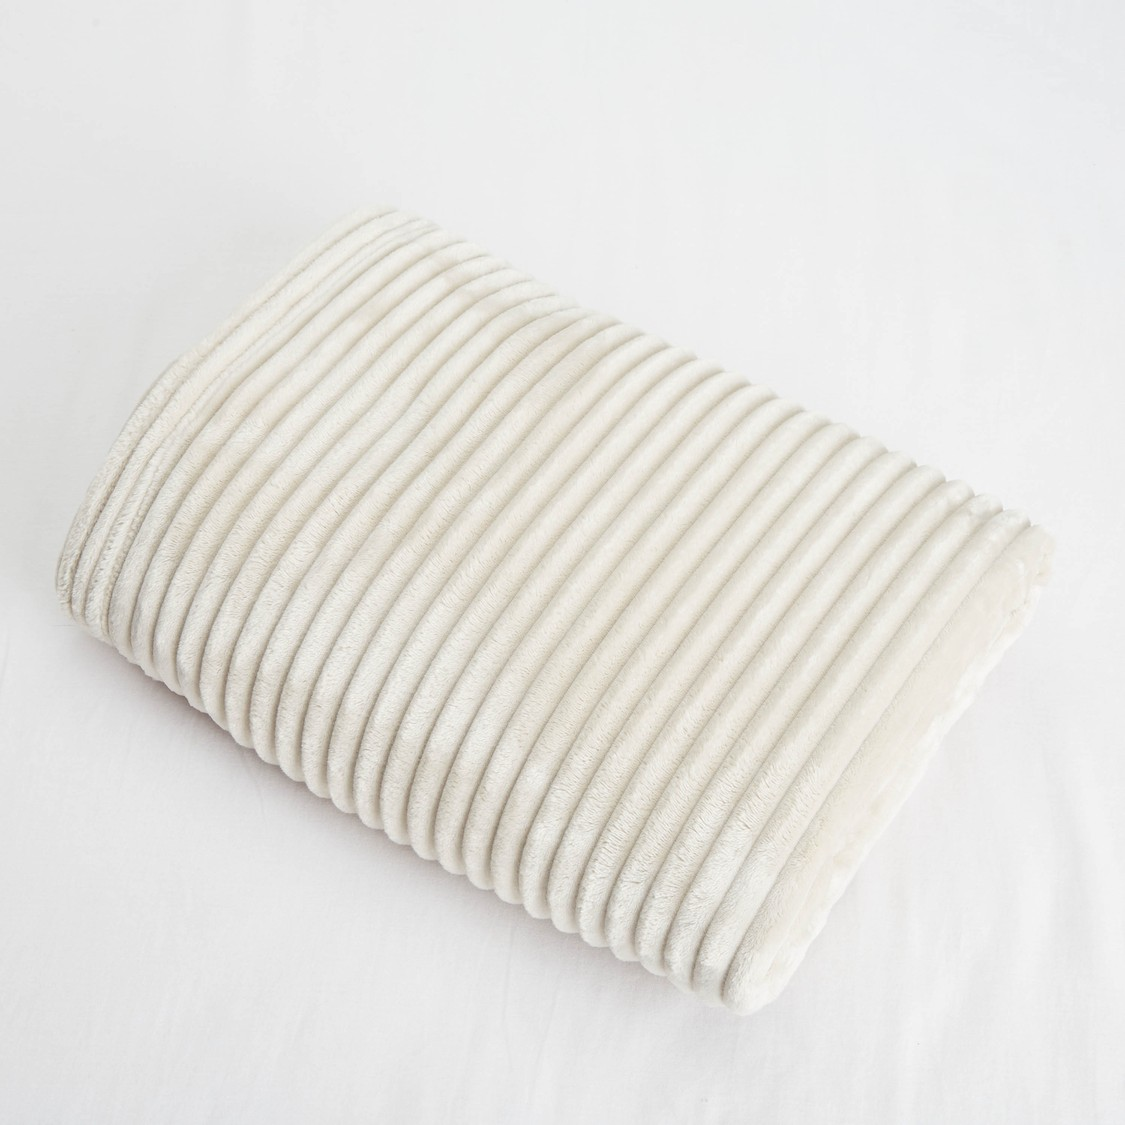 Quilted Rectangular King Size Blanket - 220x200 cms